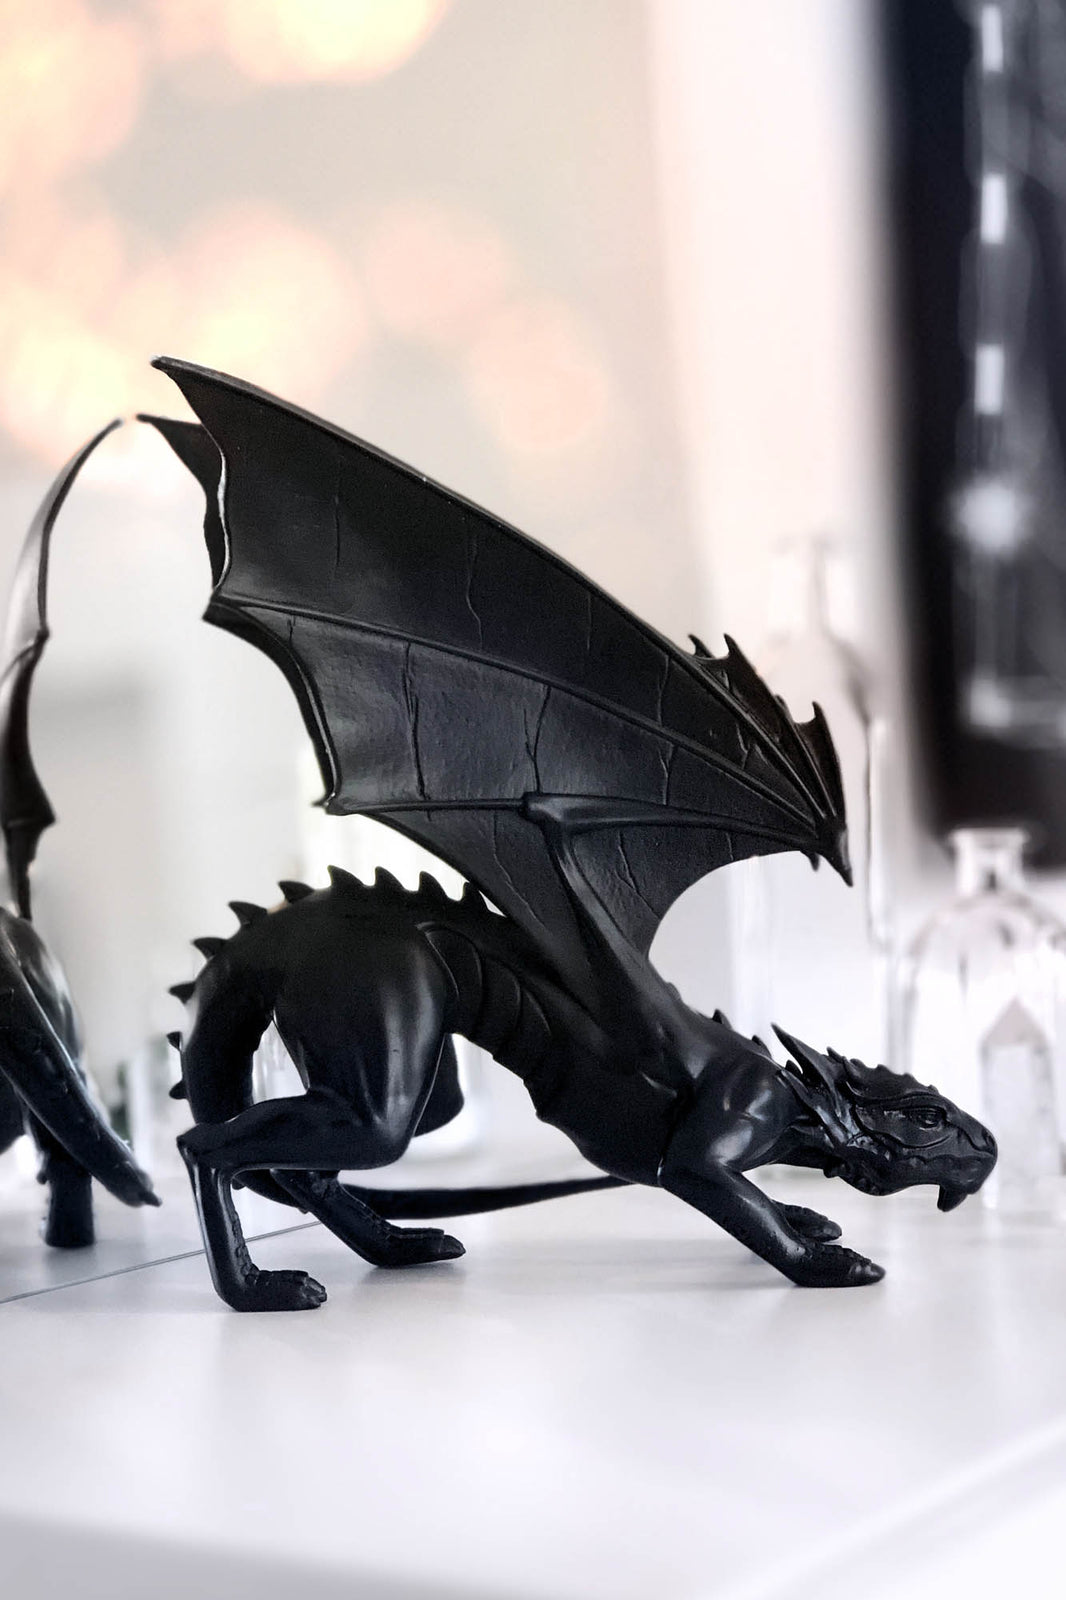 Draco Resin Statue